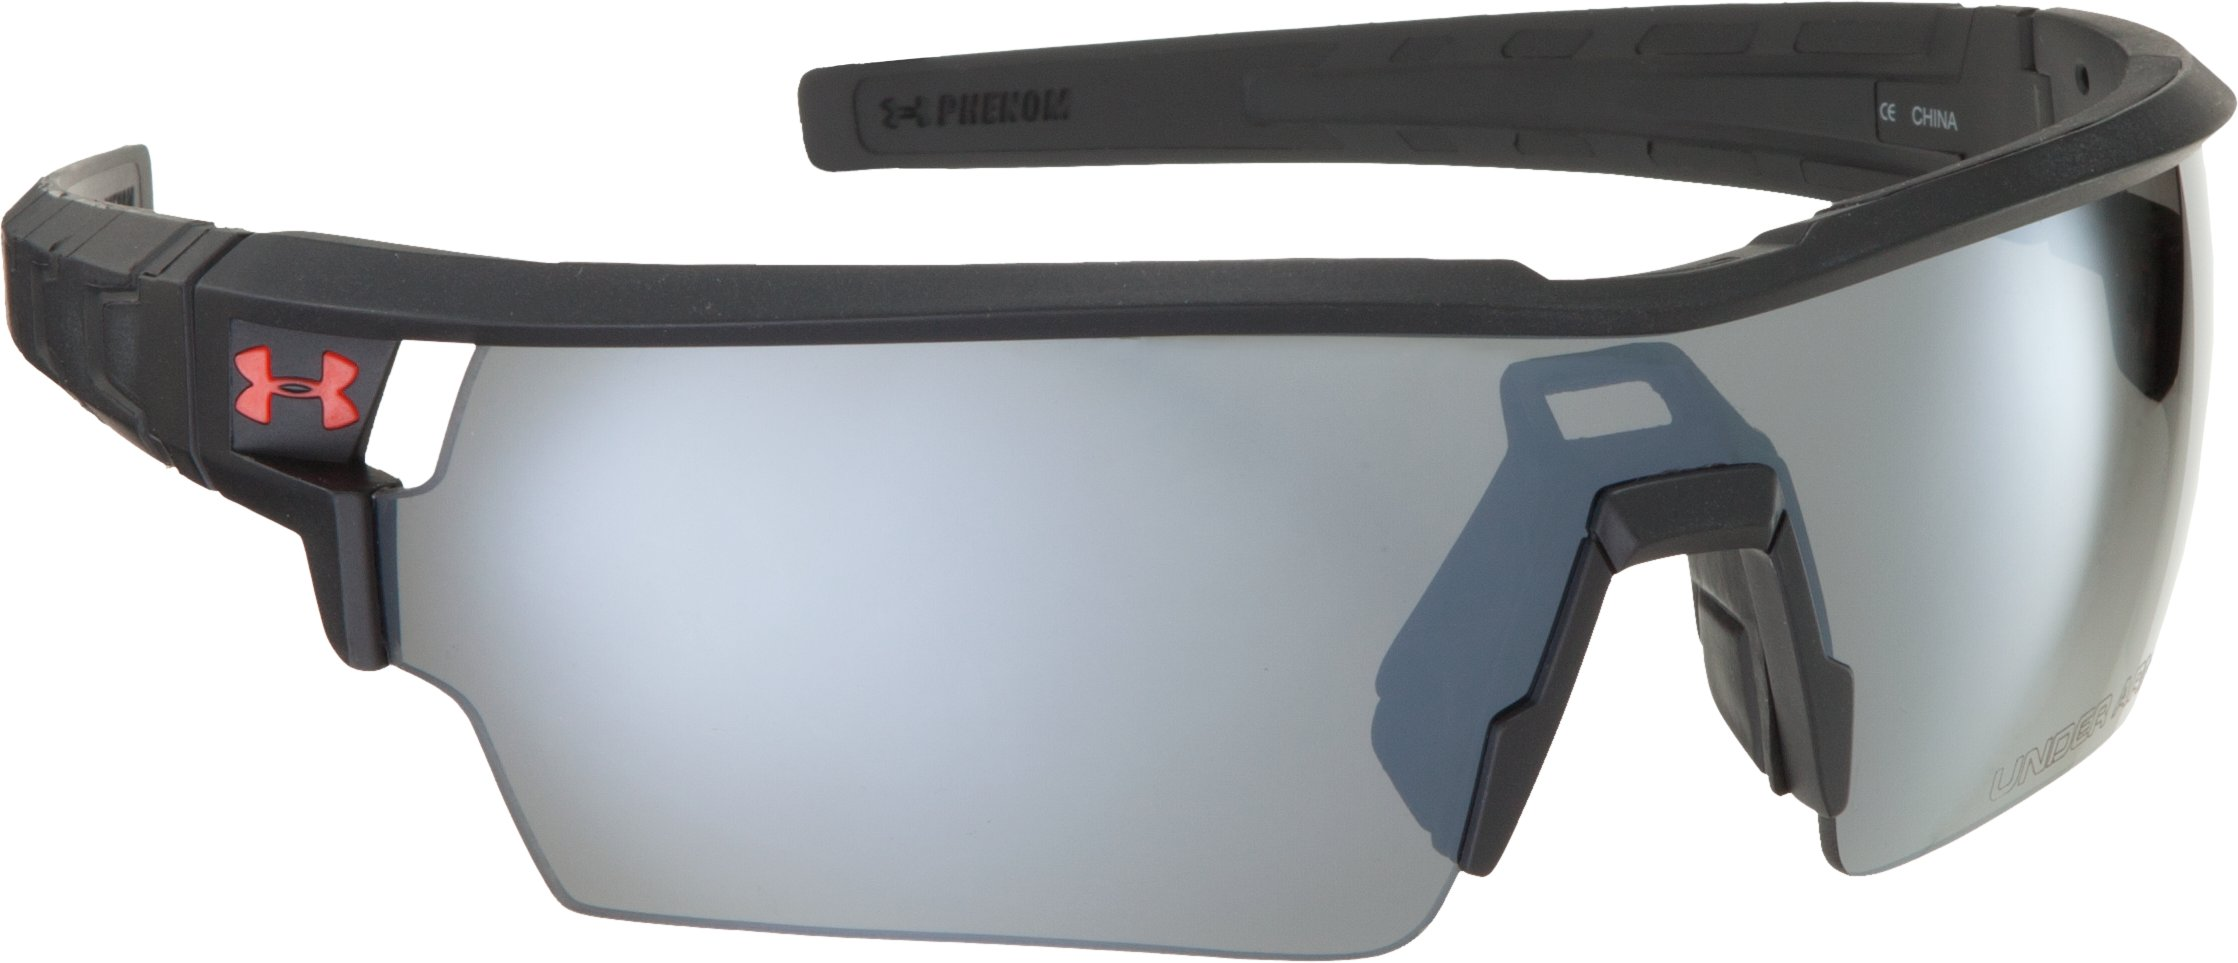 UA Phenom Sunglasses, Shiny Black